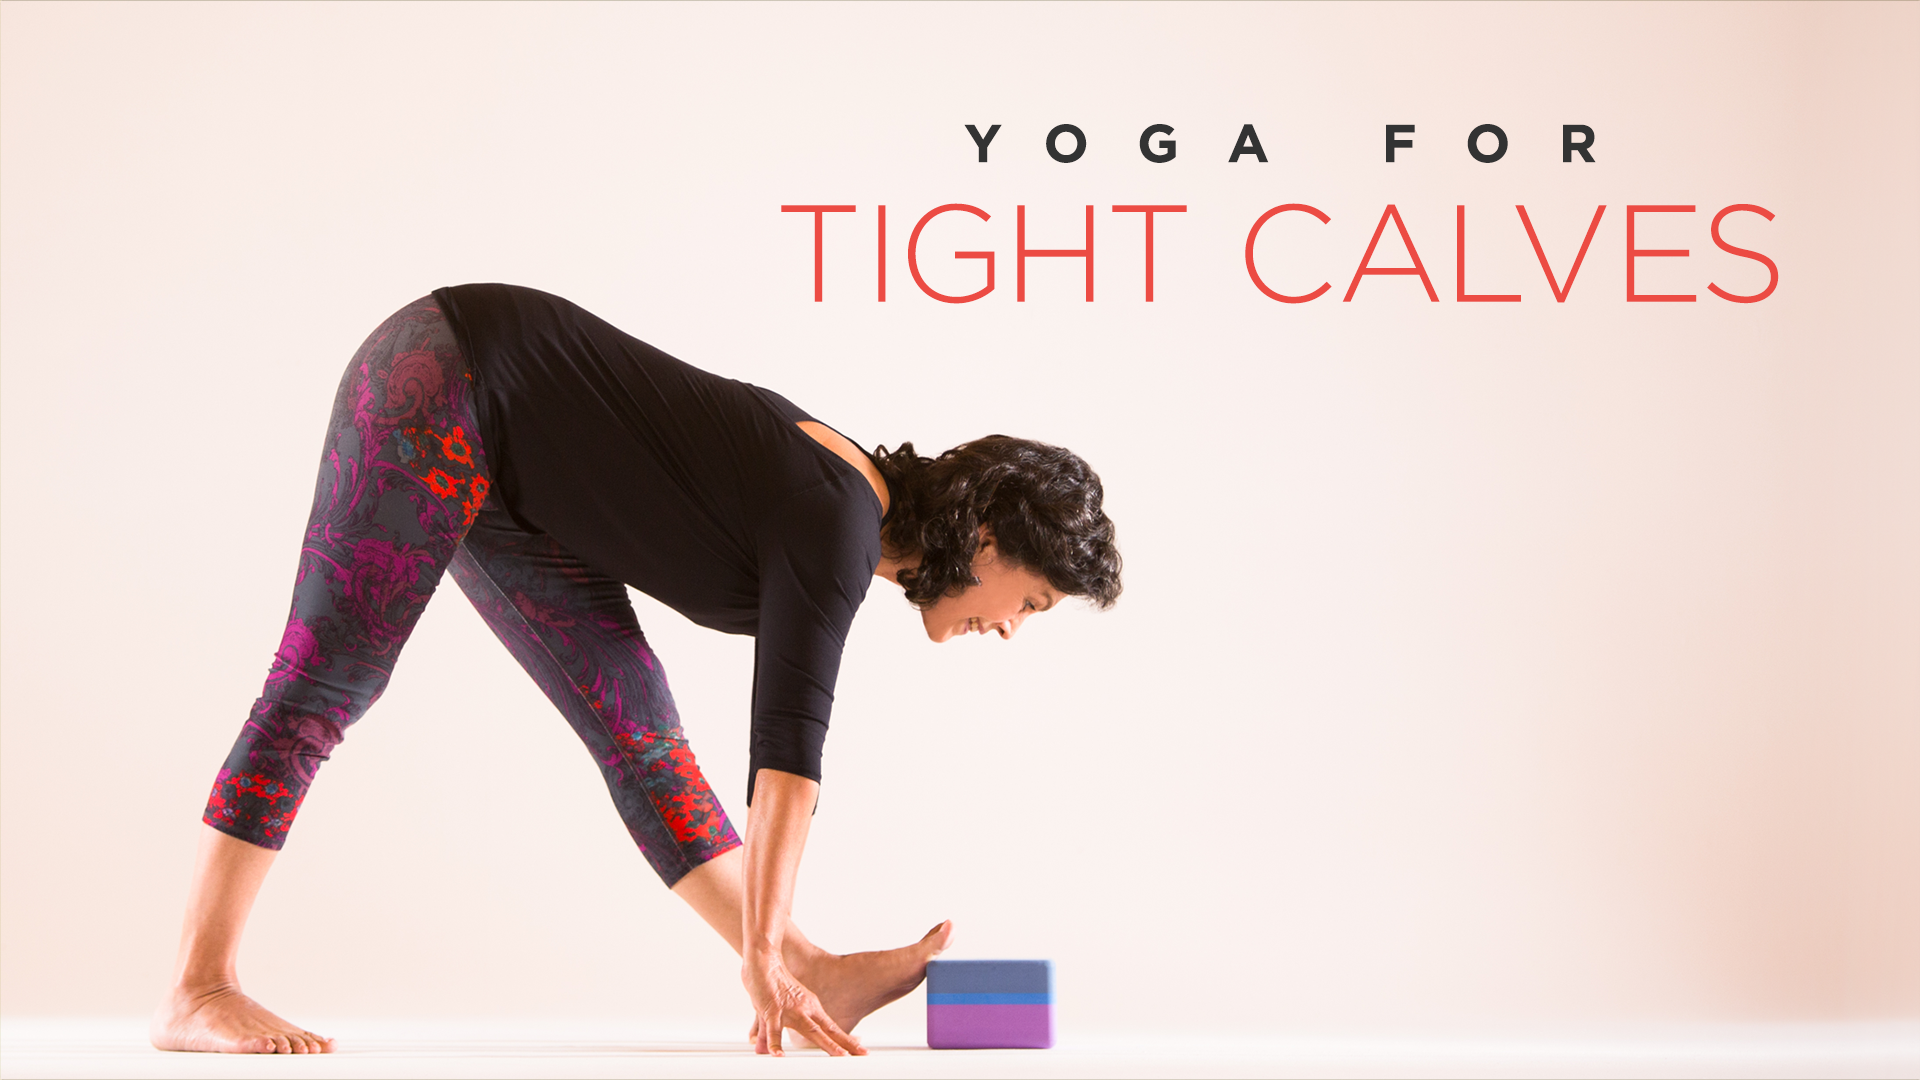 Yoga for Tight Calves ...